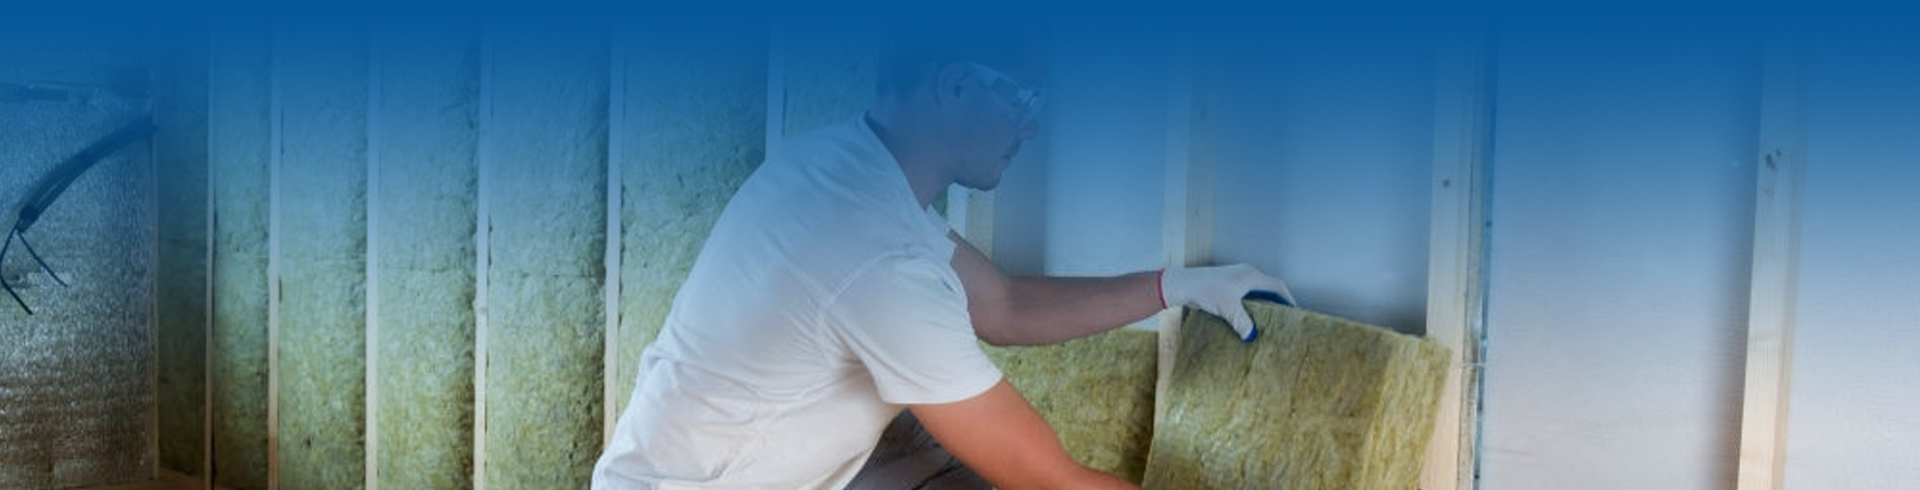 boiler replacement services